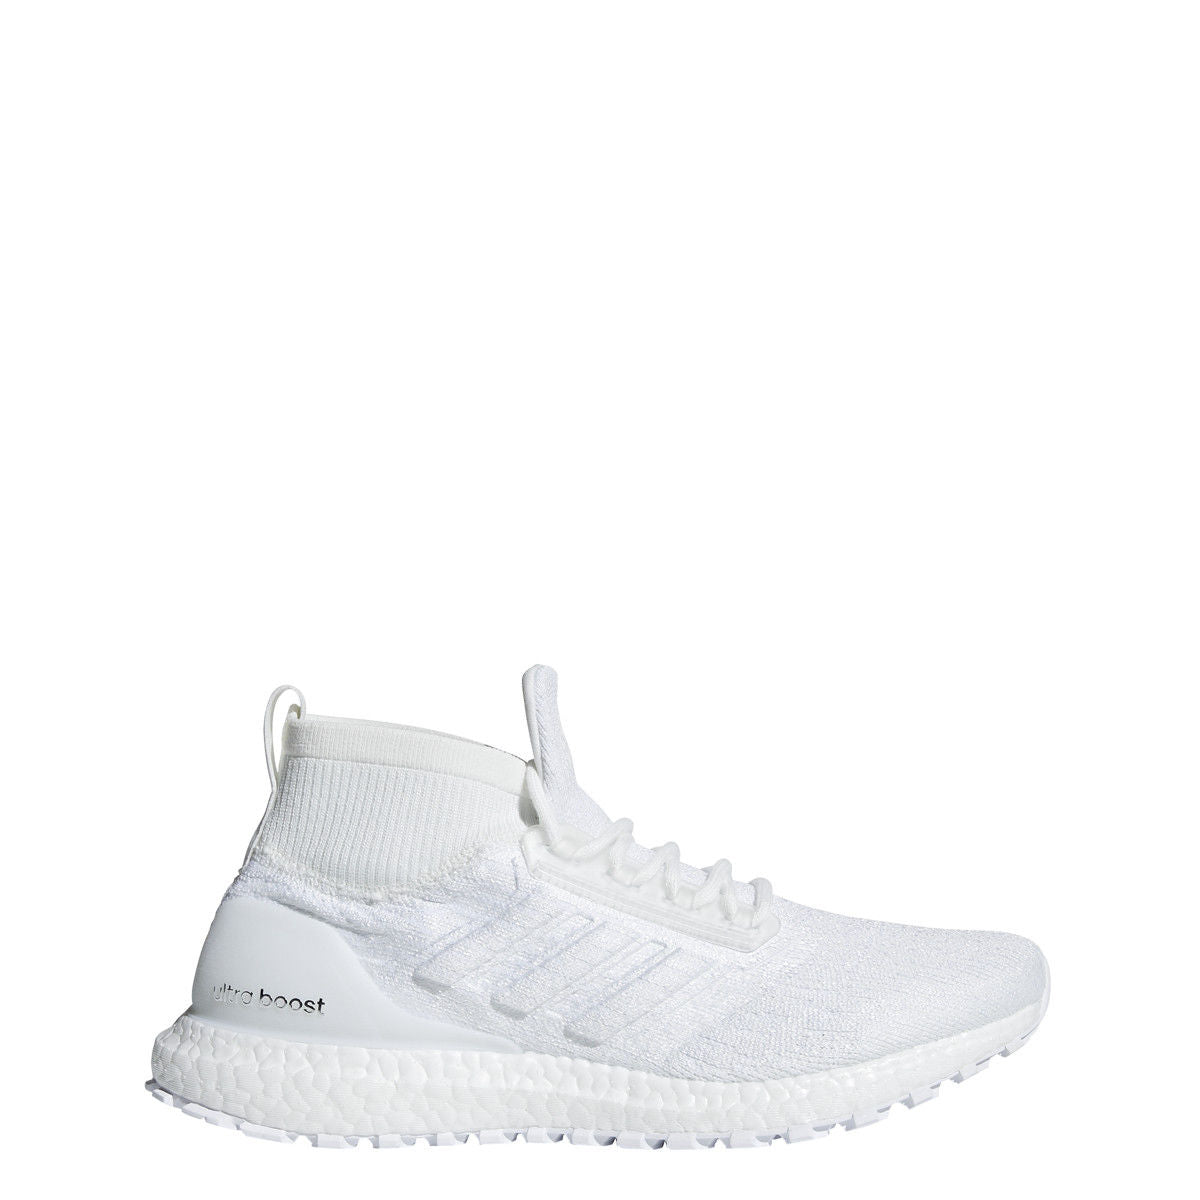 half off 2f202 21f01 New Men's ADIDAS ULTRA BOOST ATR MID - BB6131 TRIPLE WHITE Ultraboost  Sneakers available in only size 10.5